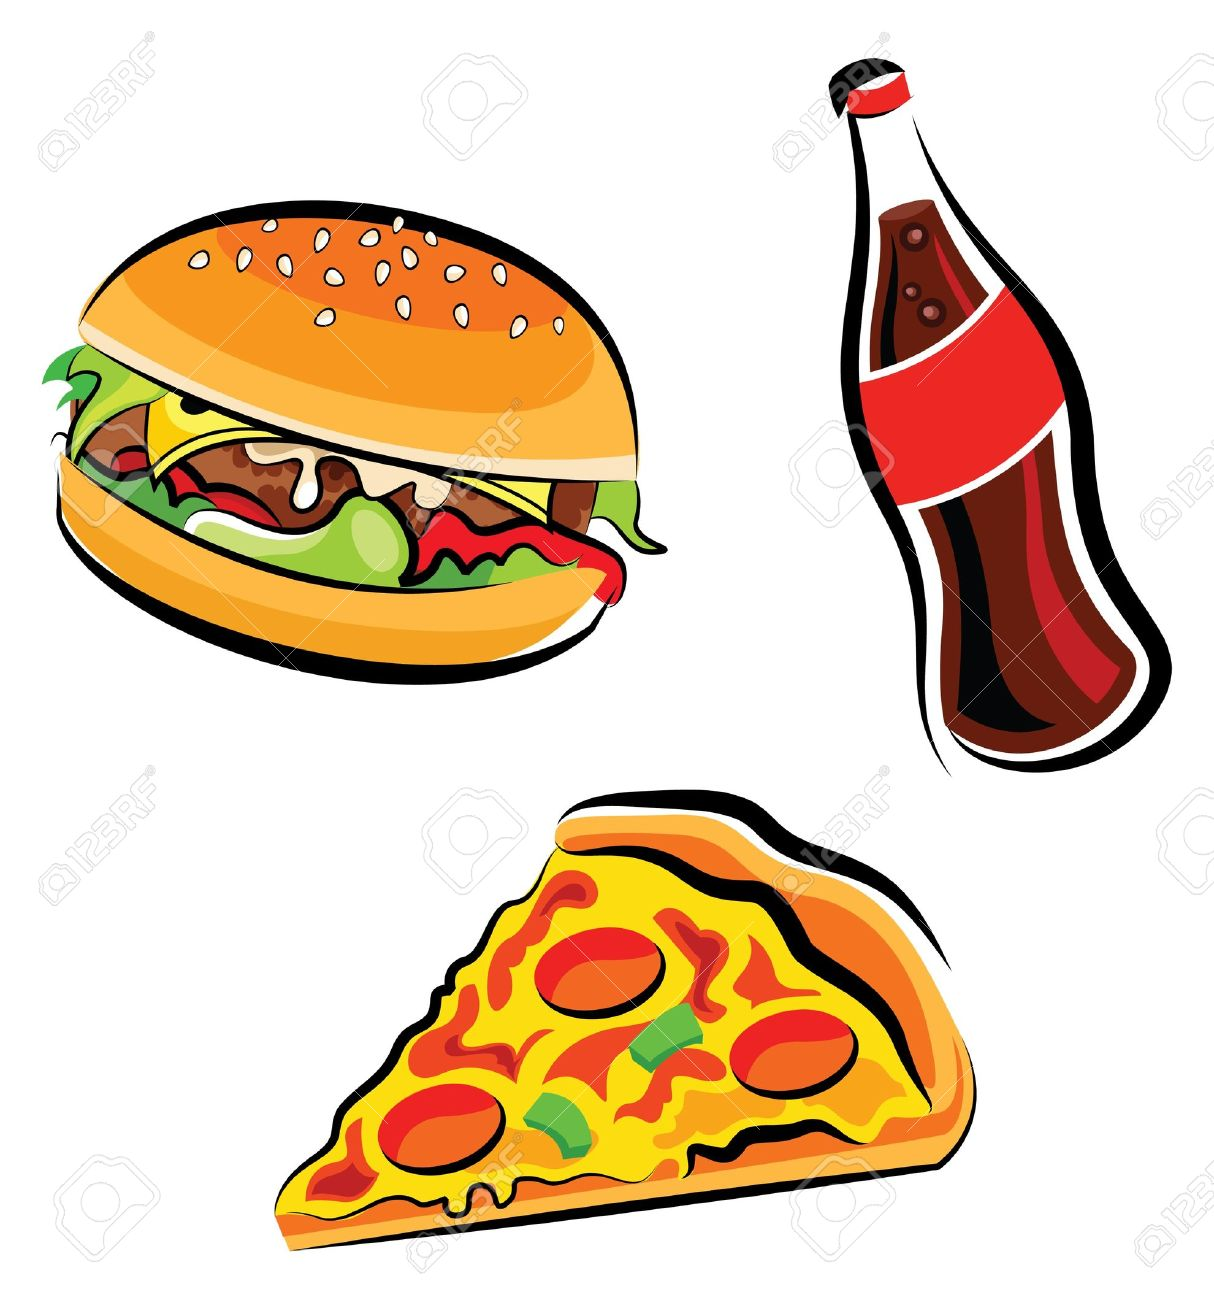 1214x1300 Hamburger Pizza Clipart Amp Hamburger Pizza Clip Art Images